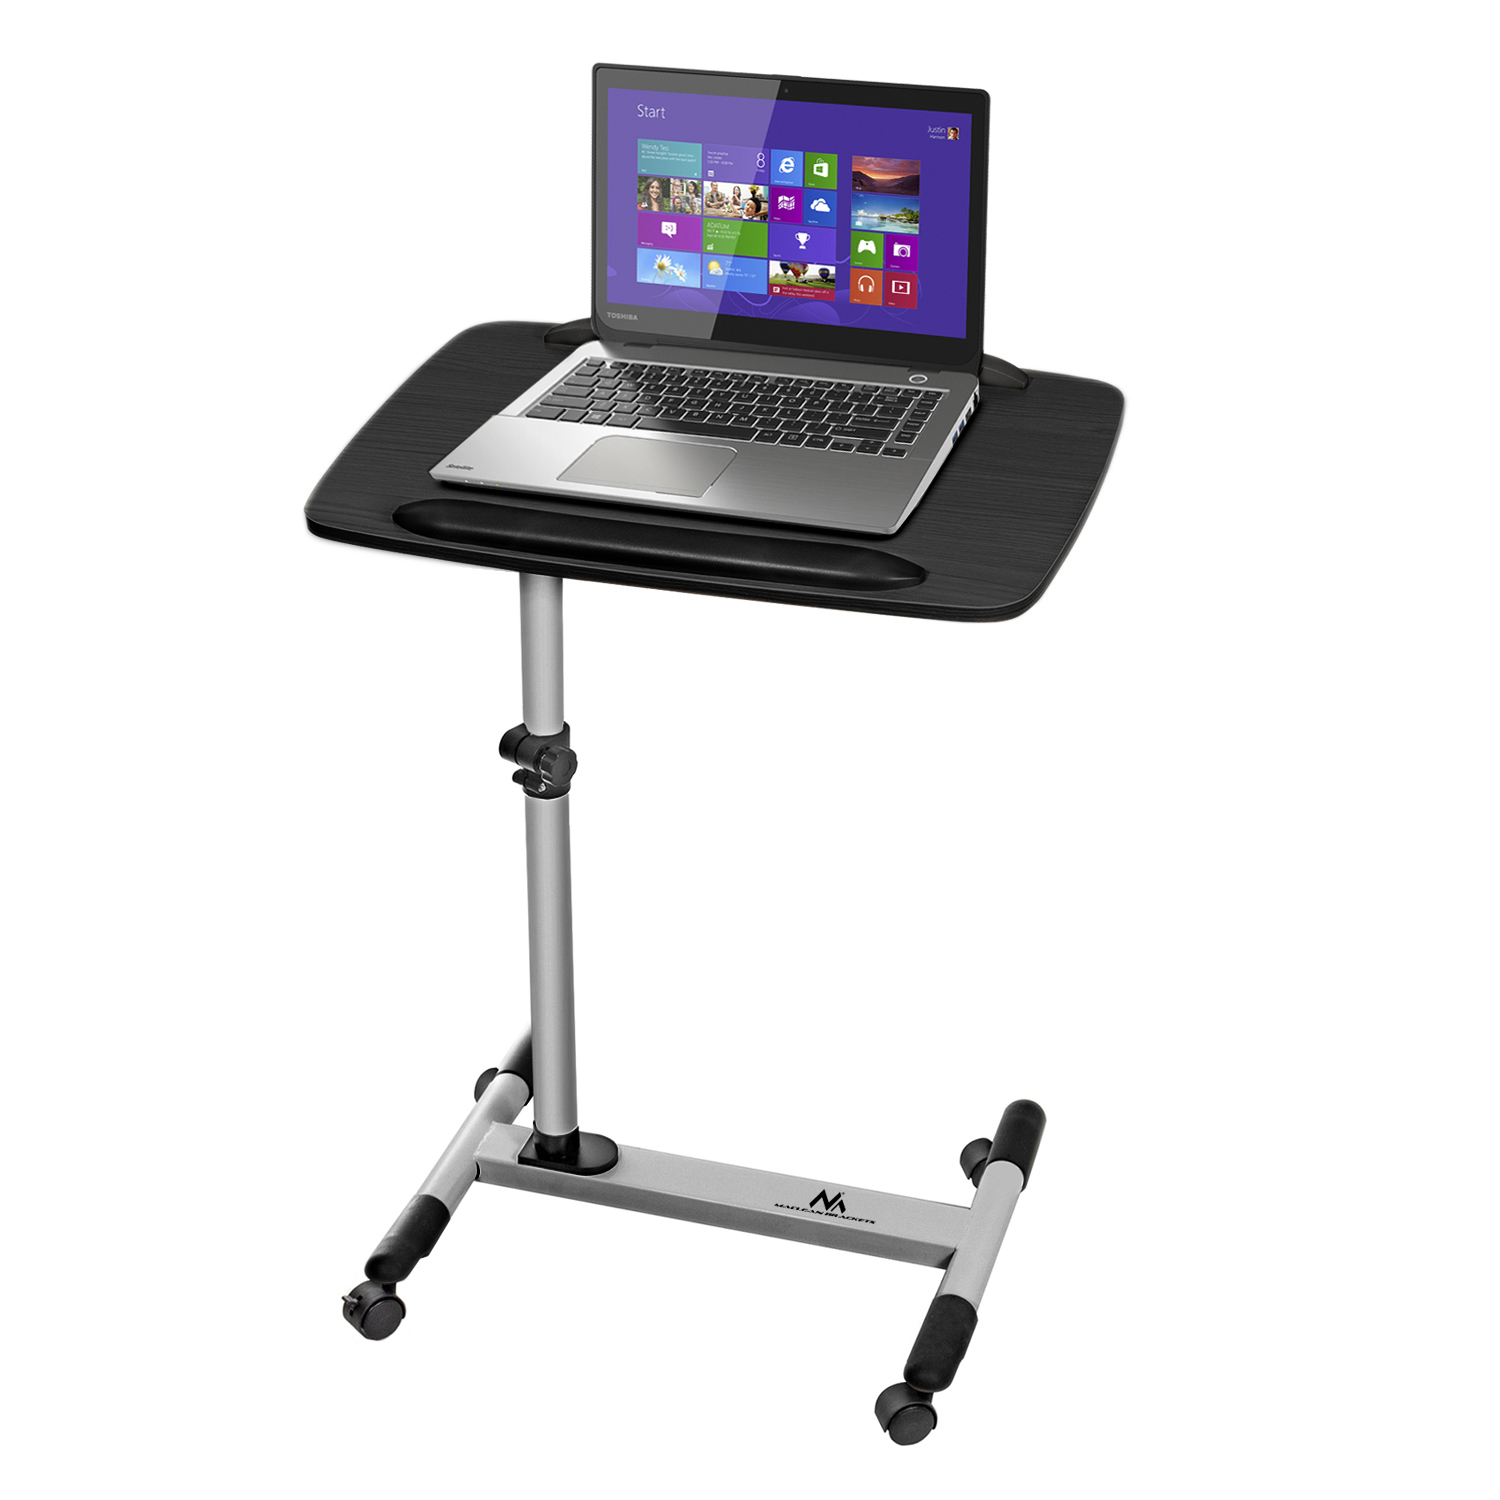 Portable laptop table universal adjustable projector desk for Portable projector for laptop